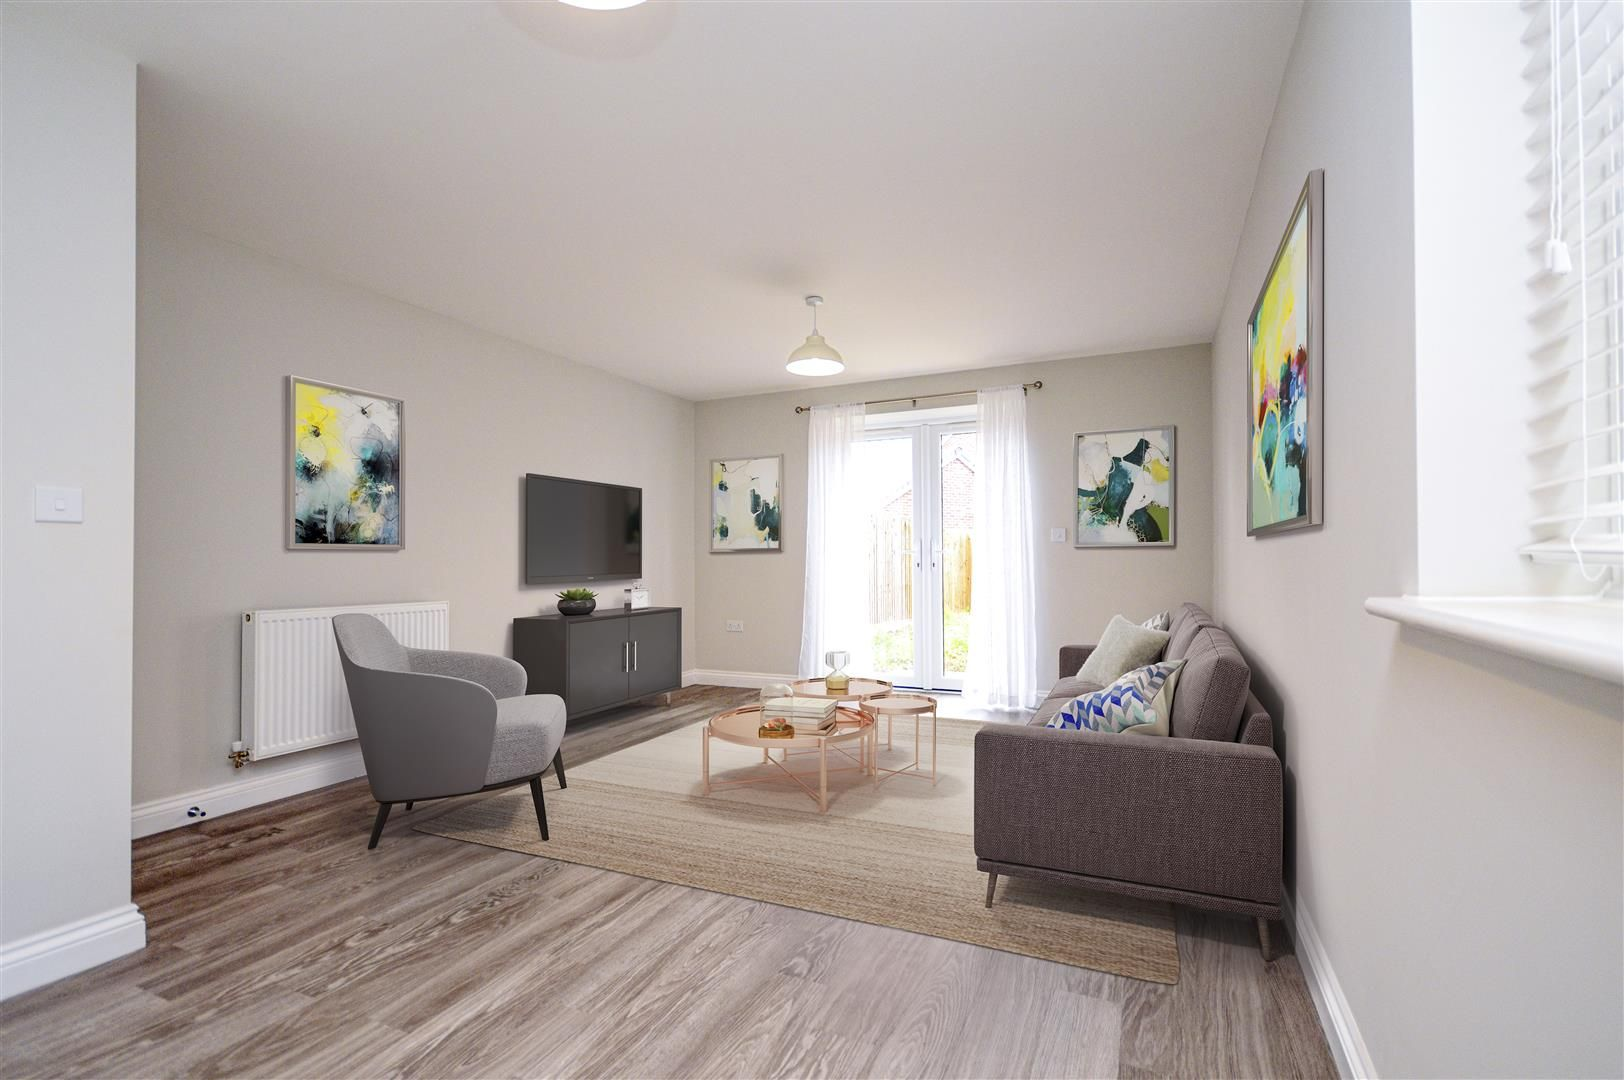 2 bed semi-detached for sale in Kingstone  - Property Image 4